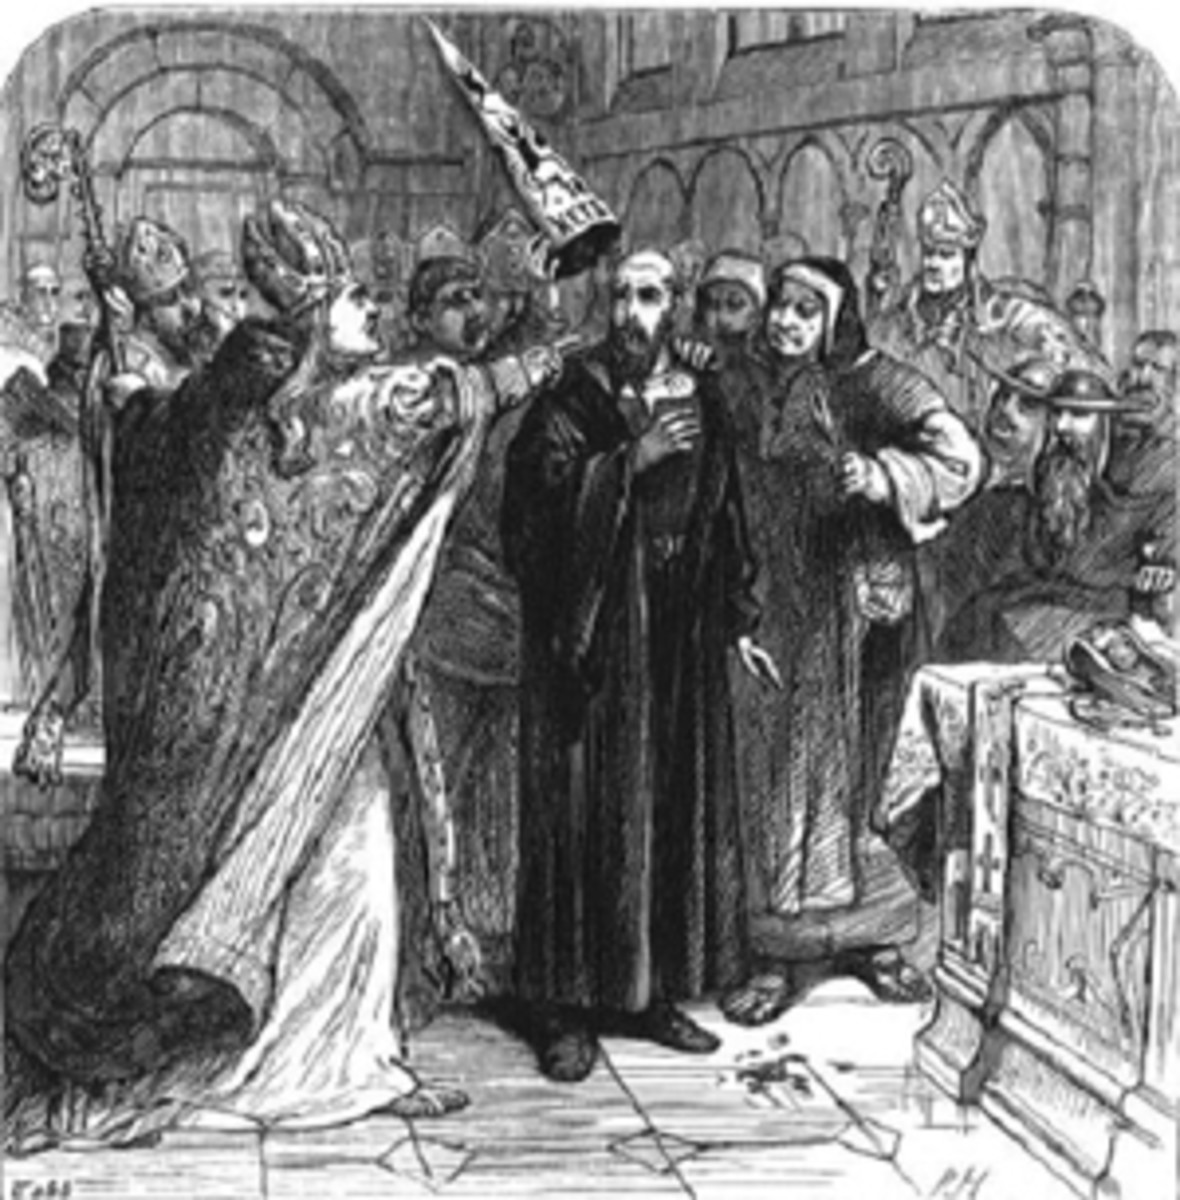 PUTTING THE DEVILS HAT ON JAN HUS AS HE PRAYS FOR HIS PERSECUTORS